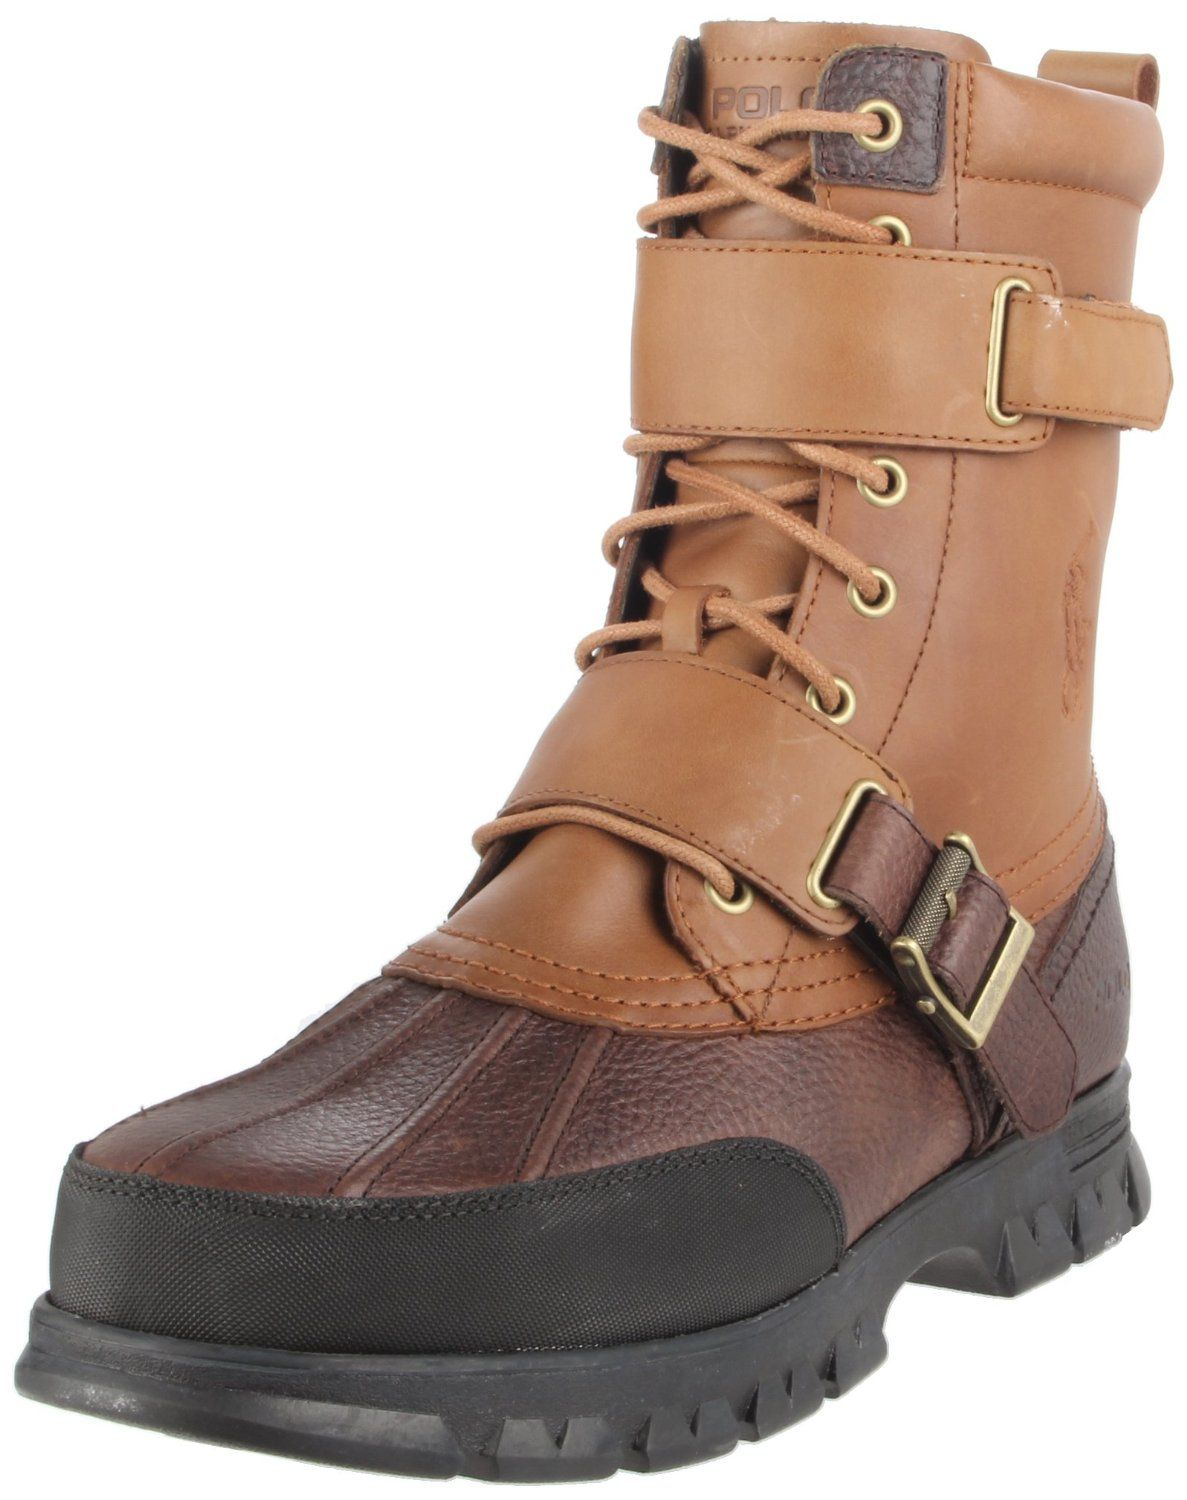 920a277b4f7 Polo Ralph Lauren Men's Varick Hiking Boot | Shoes | Mens boots ...